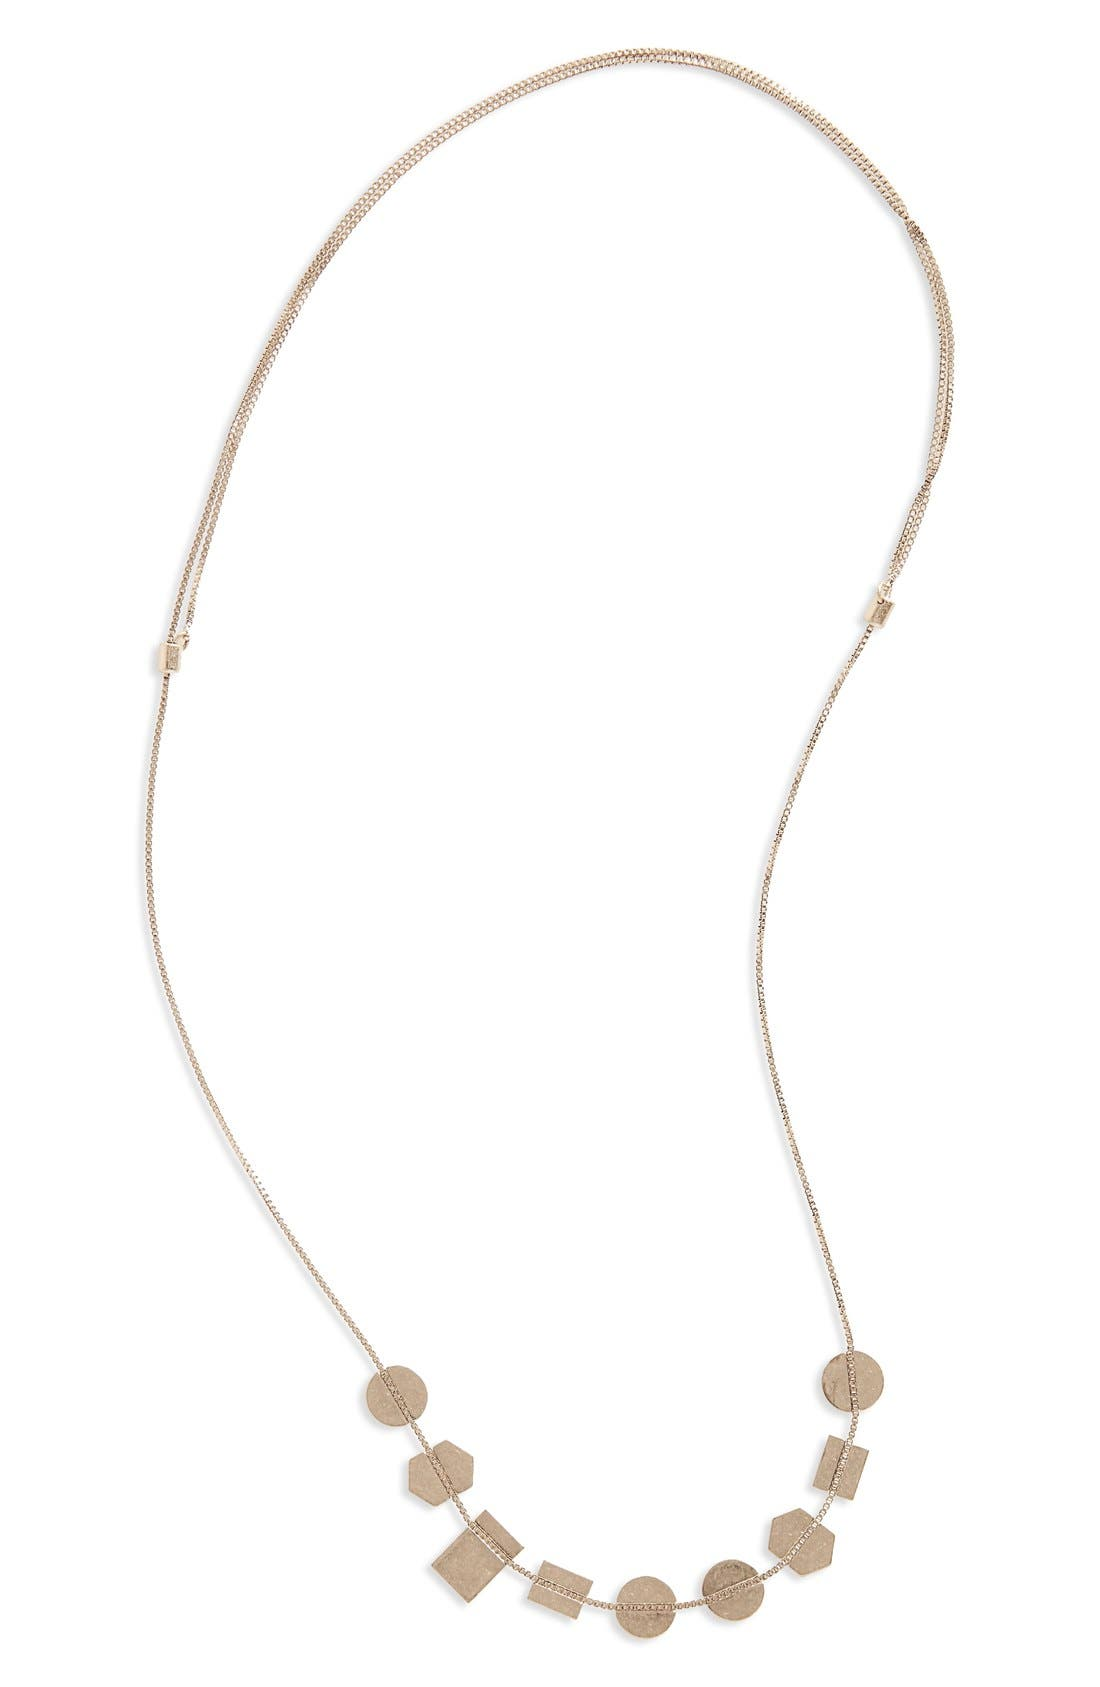 MADEWELL, Holding Pattern Necklace, Main thumbnail 1, color, LIGHT SILVER OX